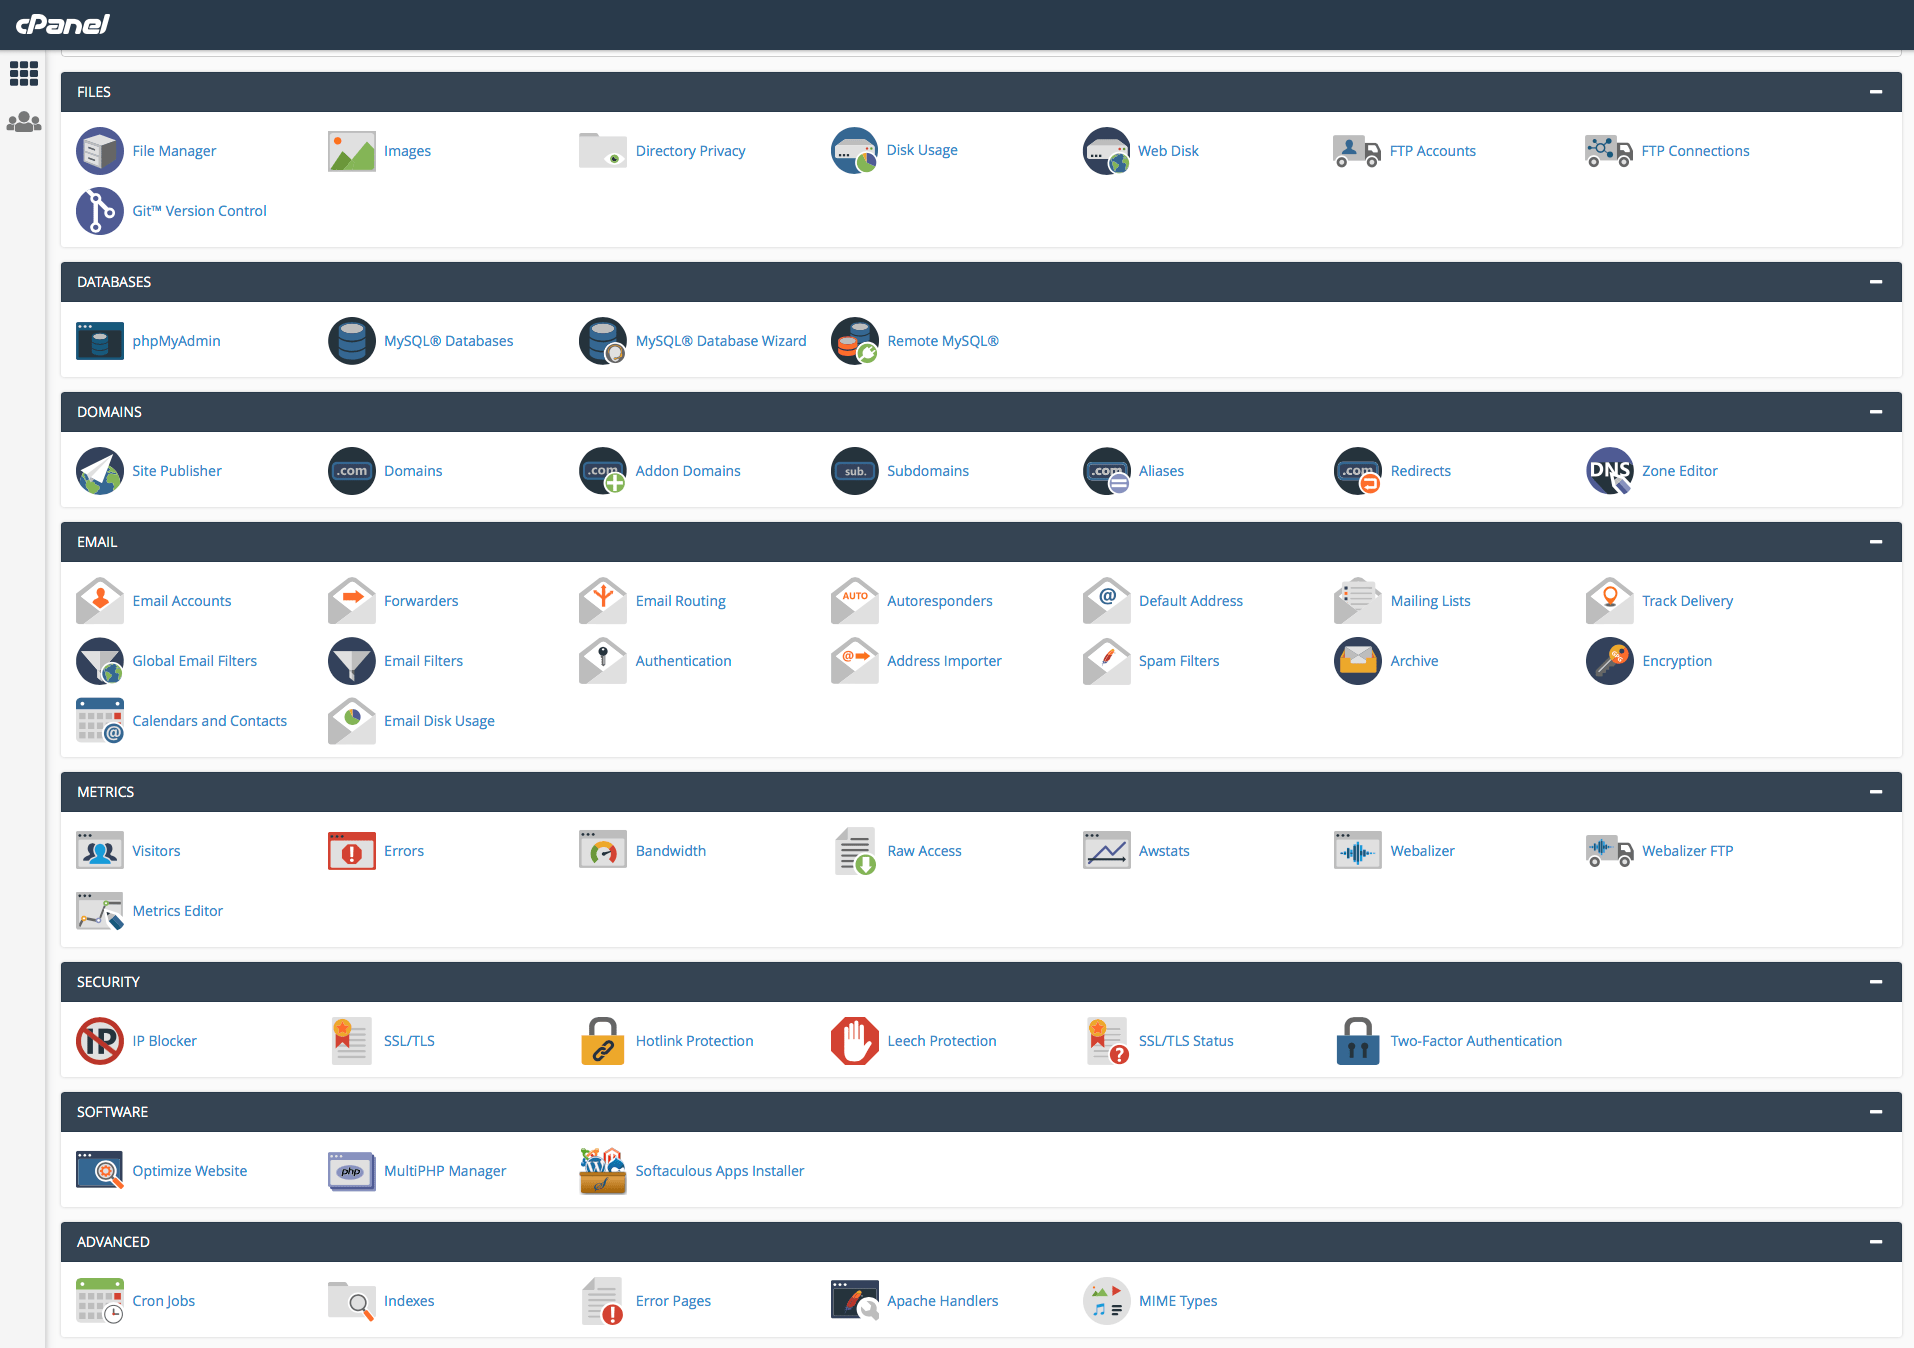 A screenshot showing the options available on CPanel